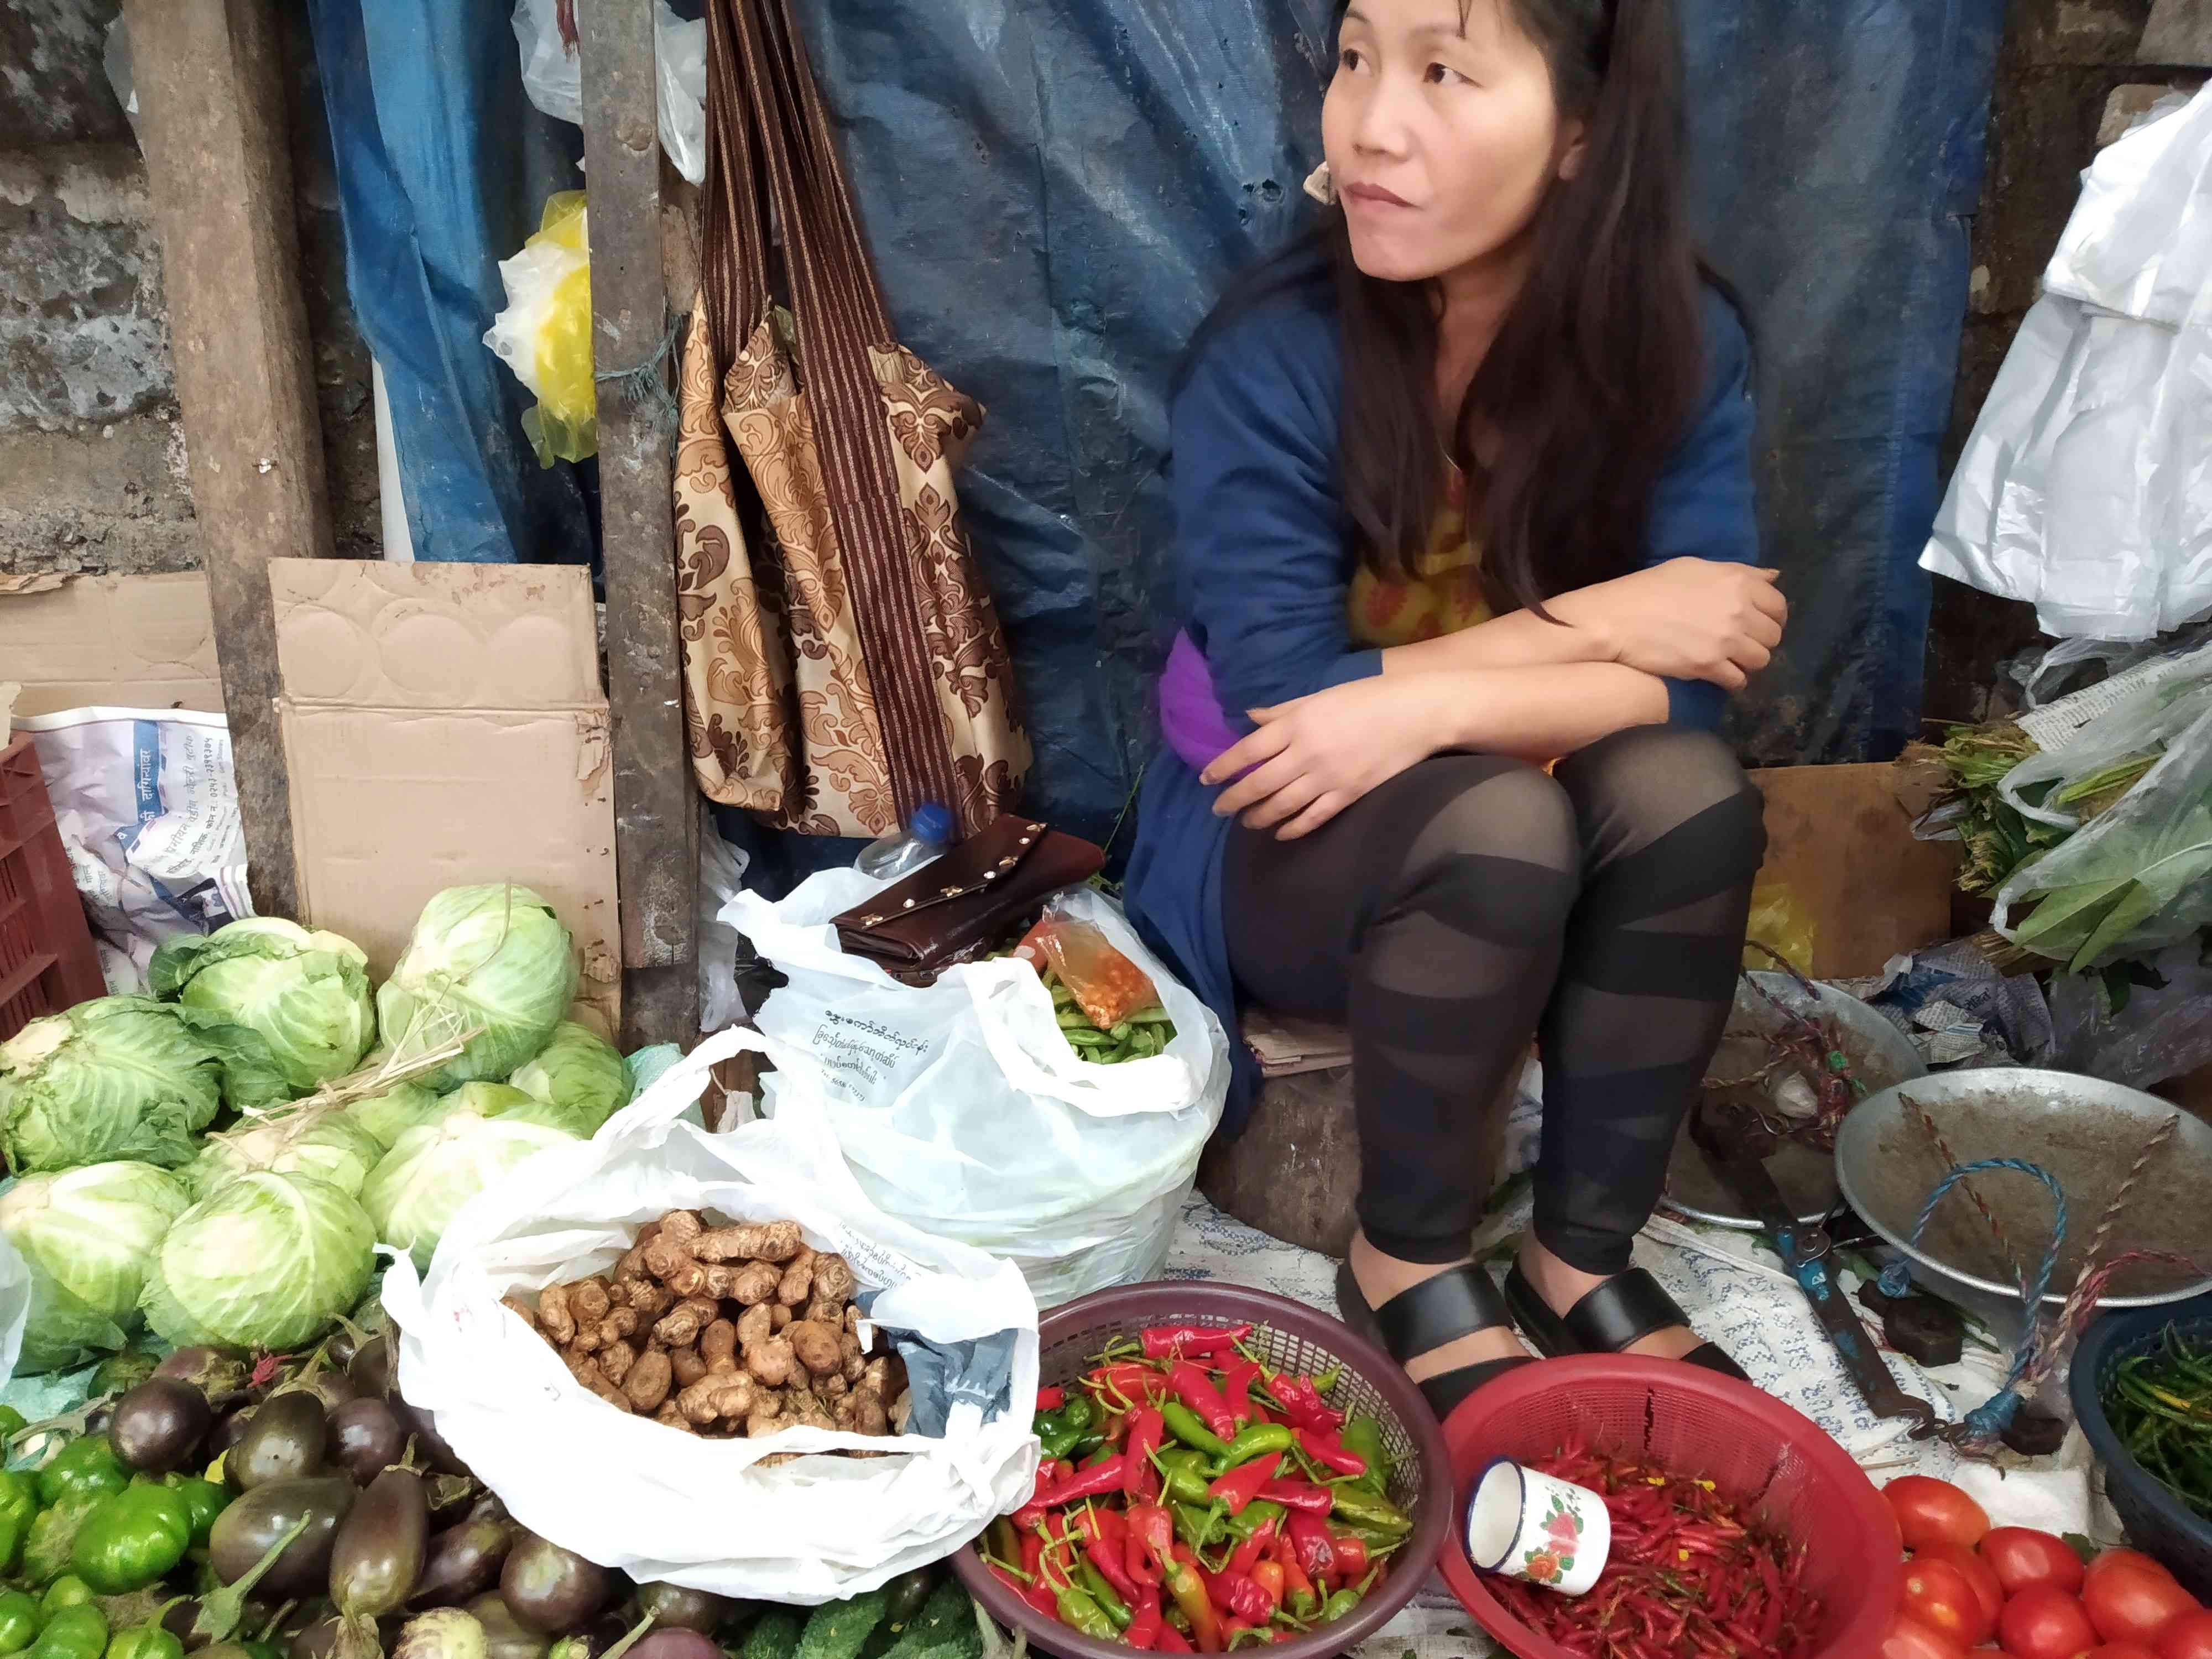 A woman selling ginger in an Aizawl market. (Credit: Arunabh Saikia)